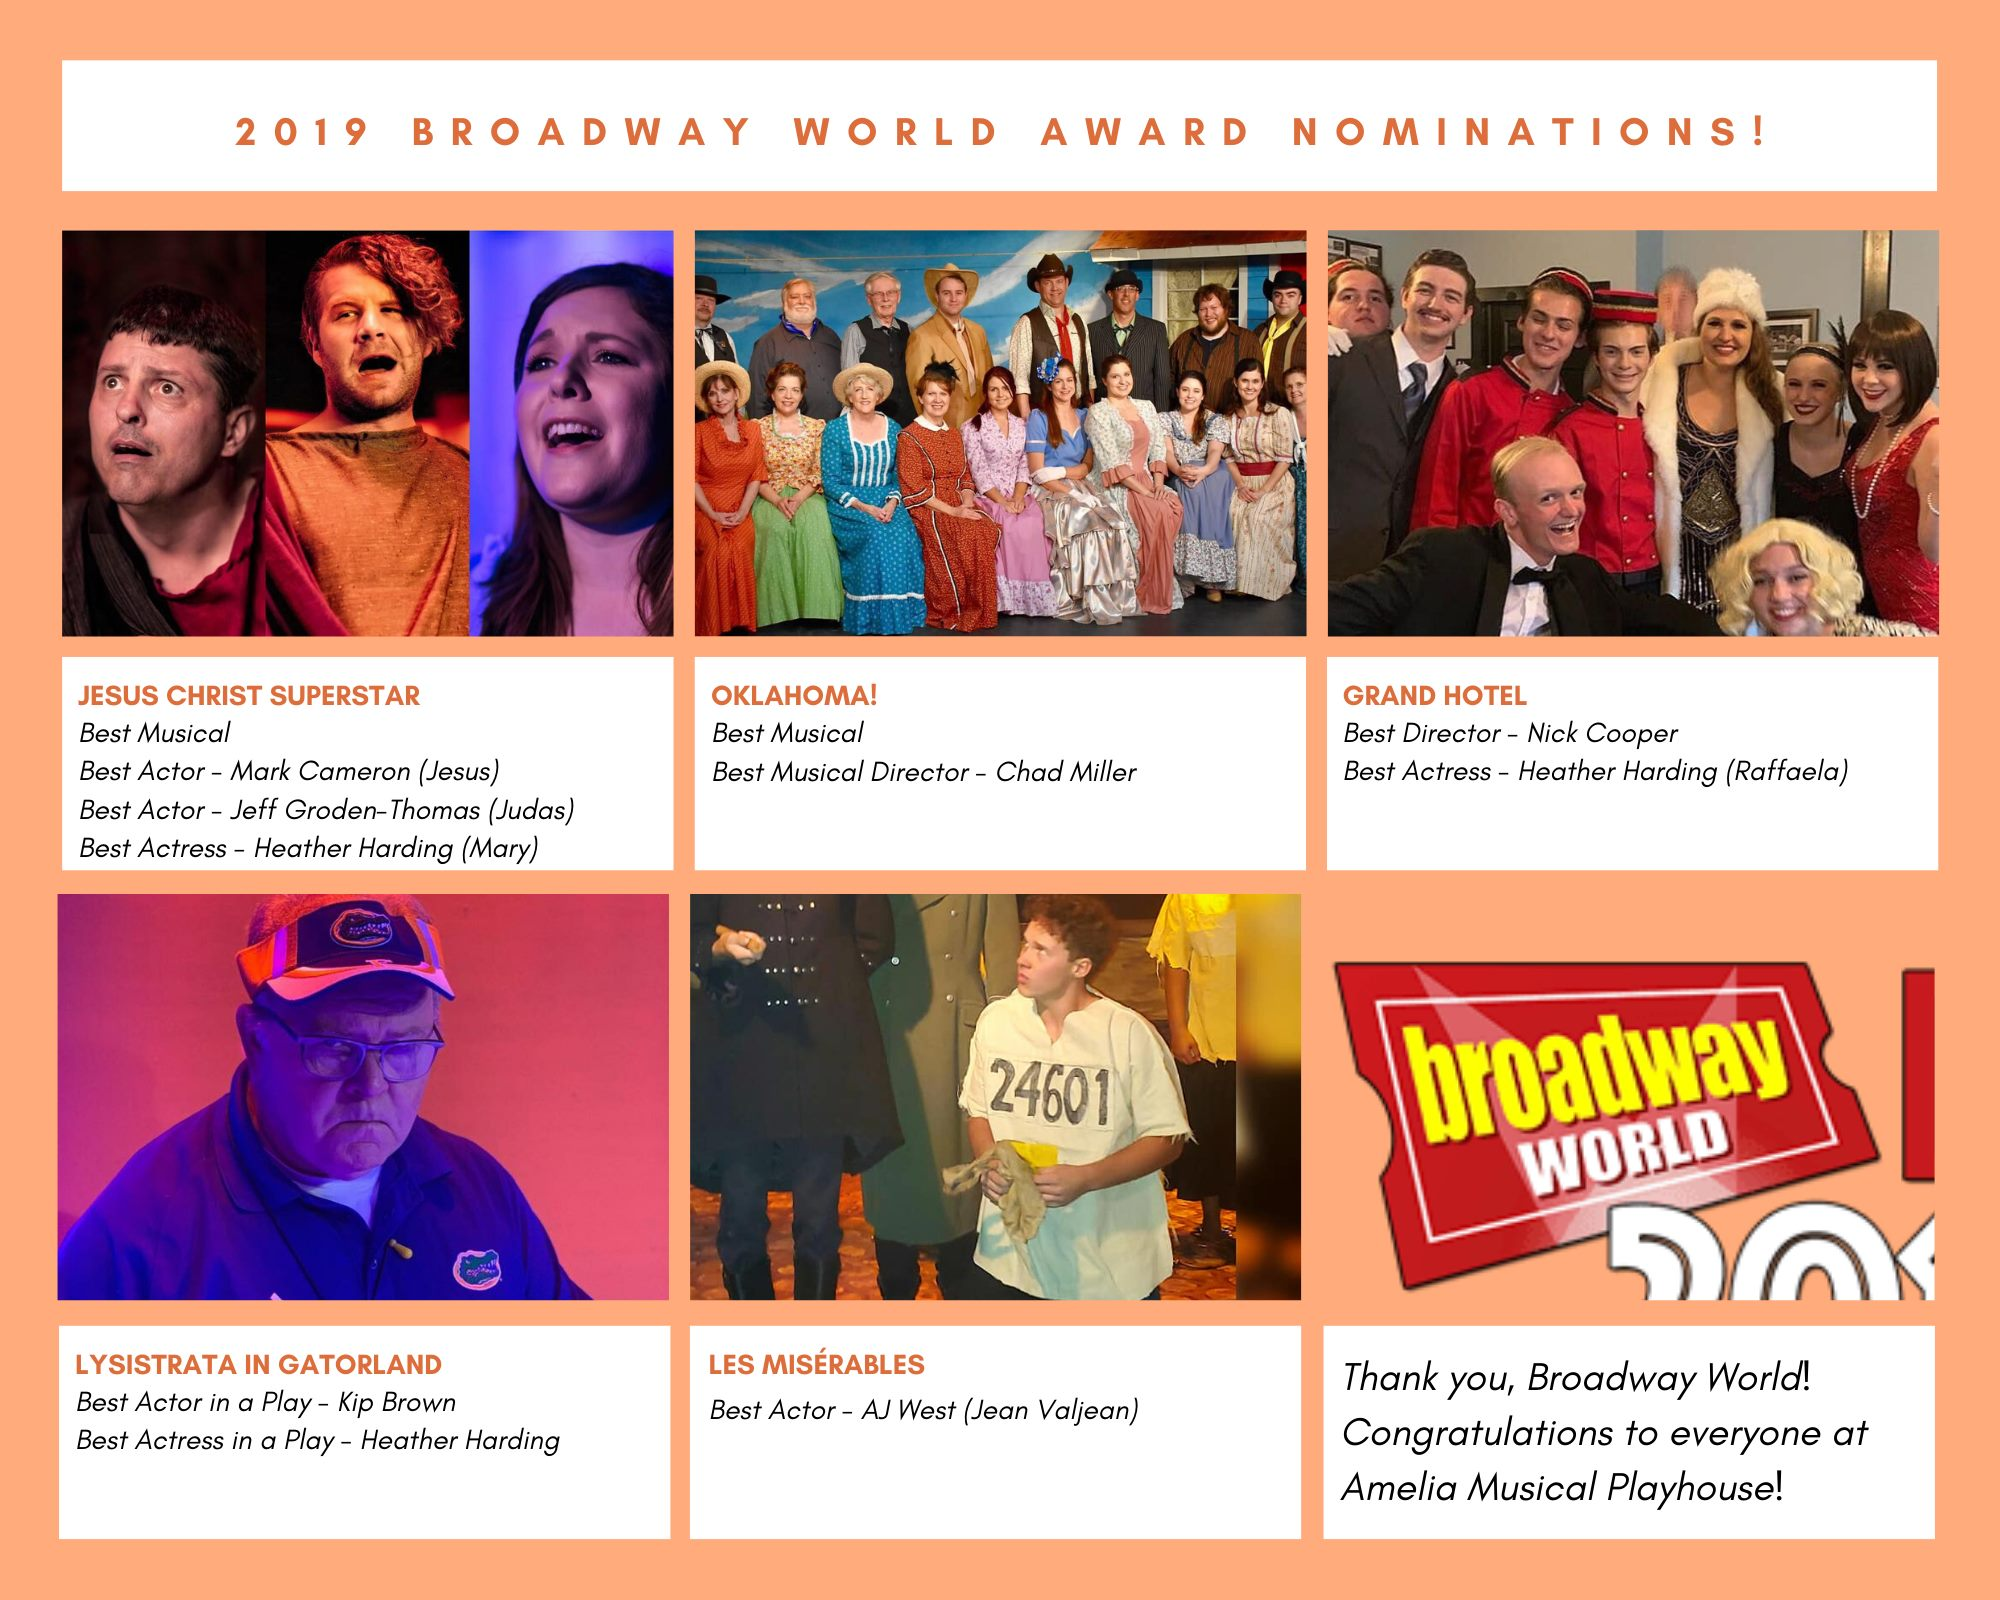 11 Broadway World Nominations